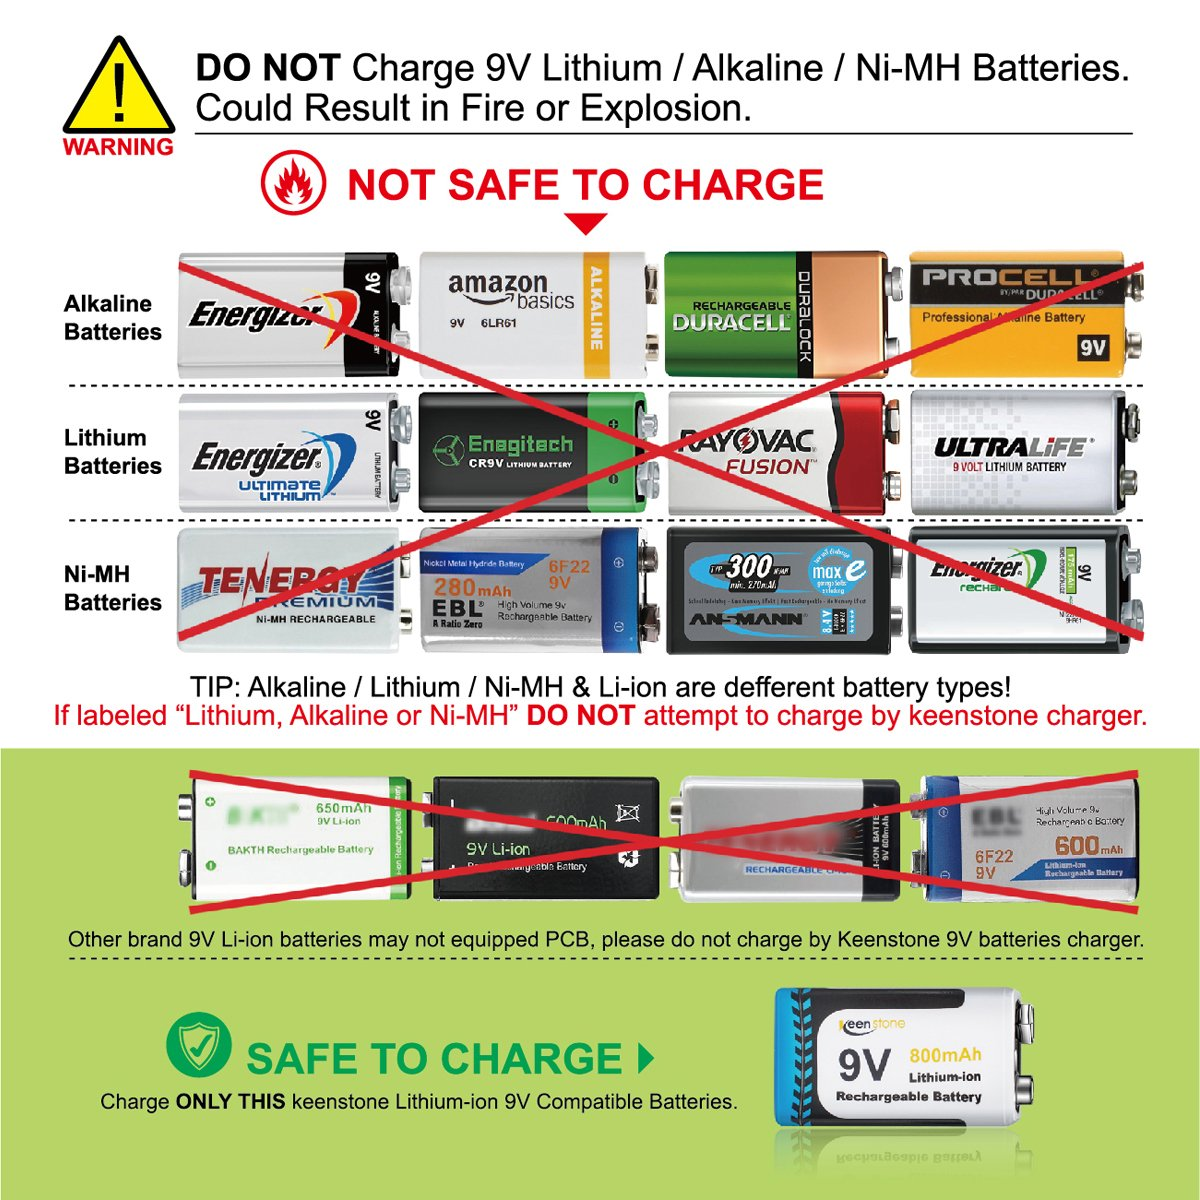 9V Batteries, Keenstone 800mAh 9 Volt Rechargeable Lithium-ion Battery 3 Pack with 3 Bay Charger